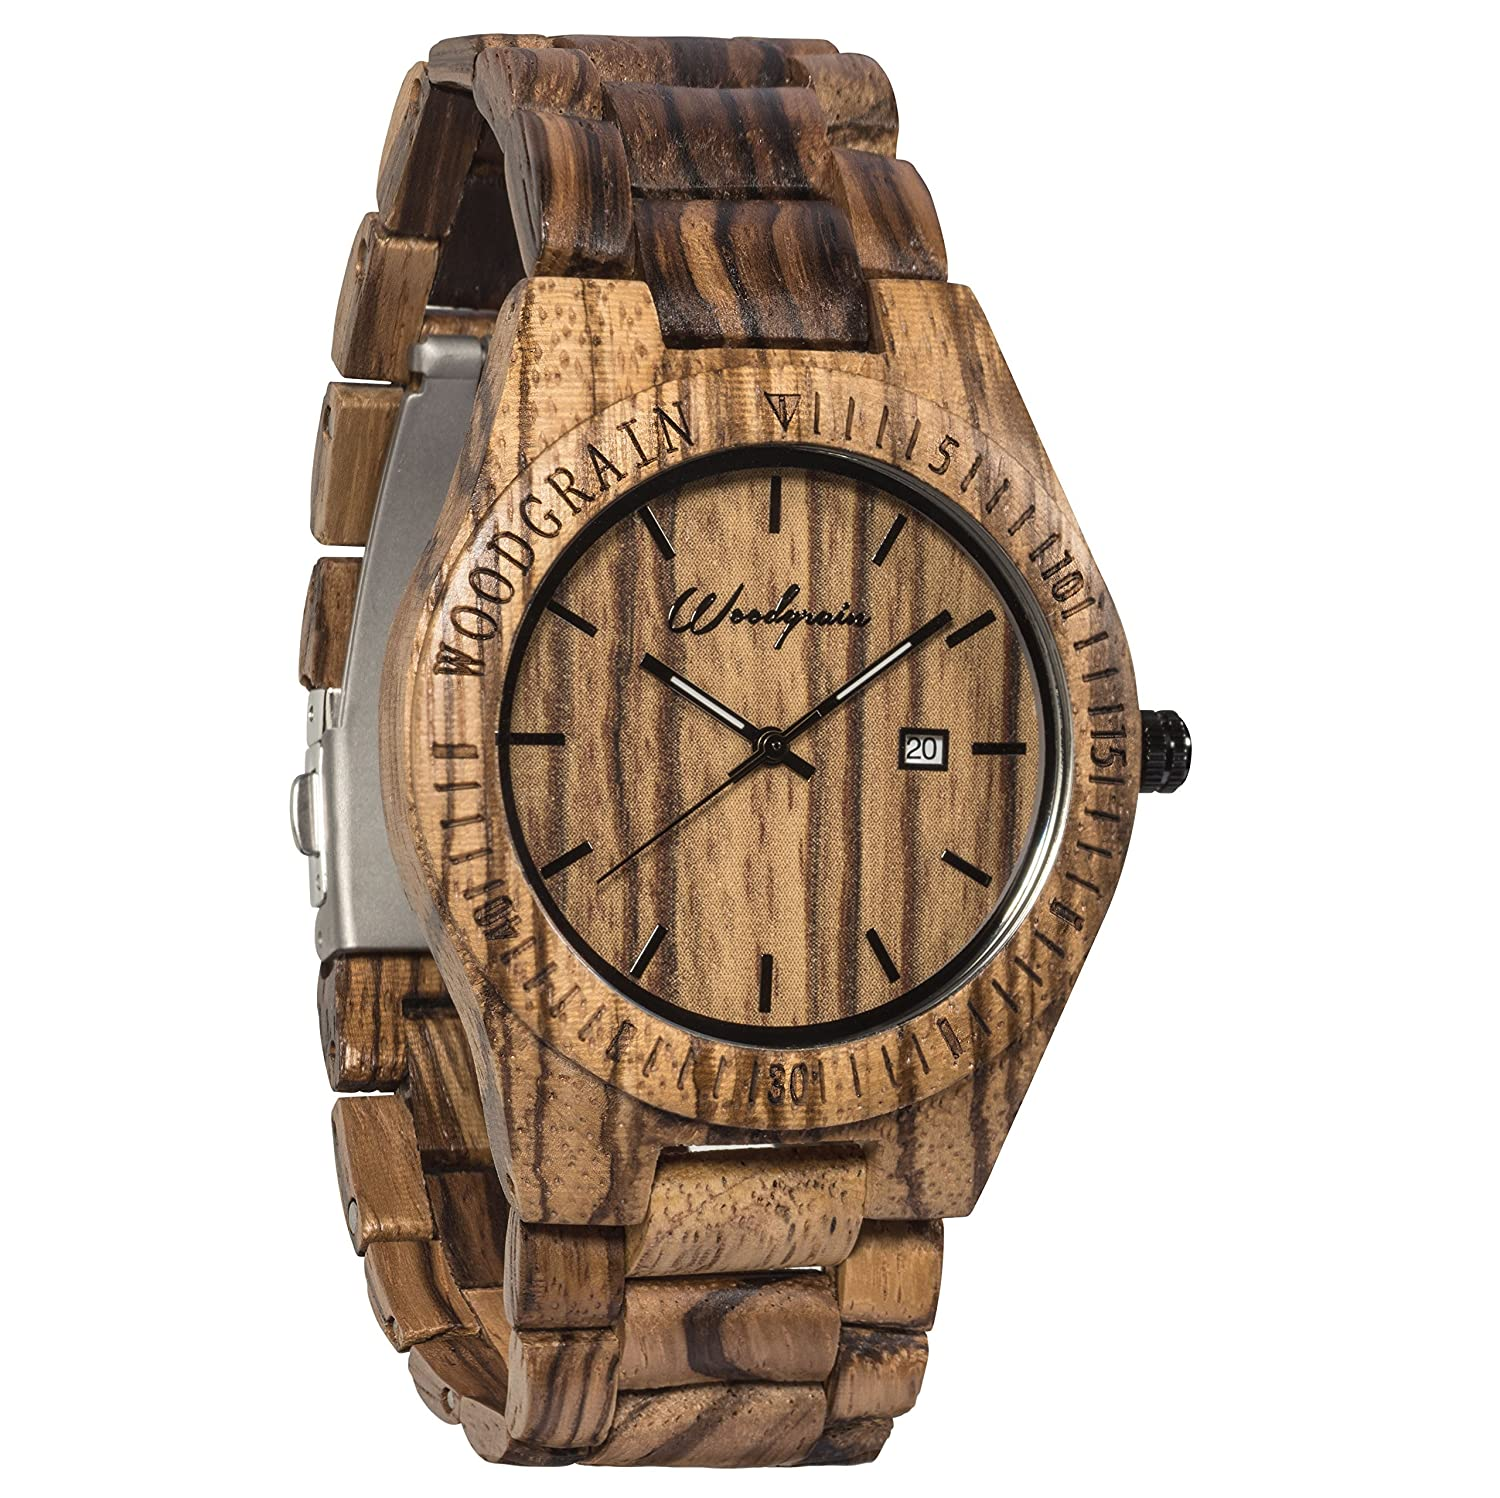 watch wristwatch gift new vintage for wood superior feminino women grain on s men watches item relogio quartz fashion from in